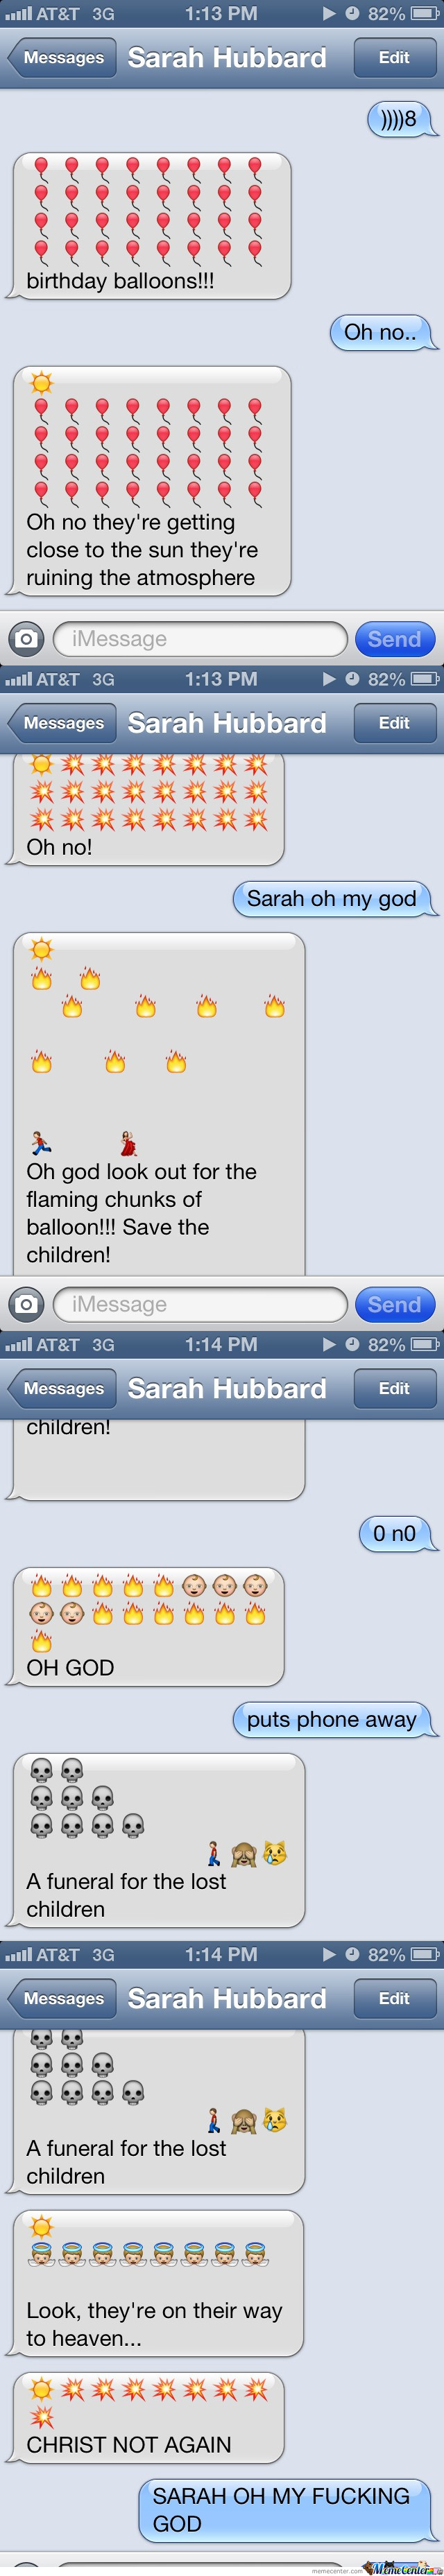 Please Be My Friend Sarah Hubbard